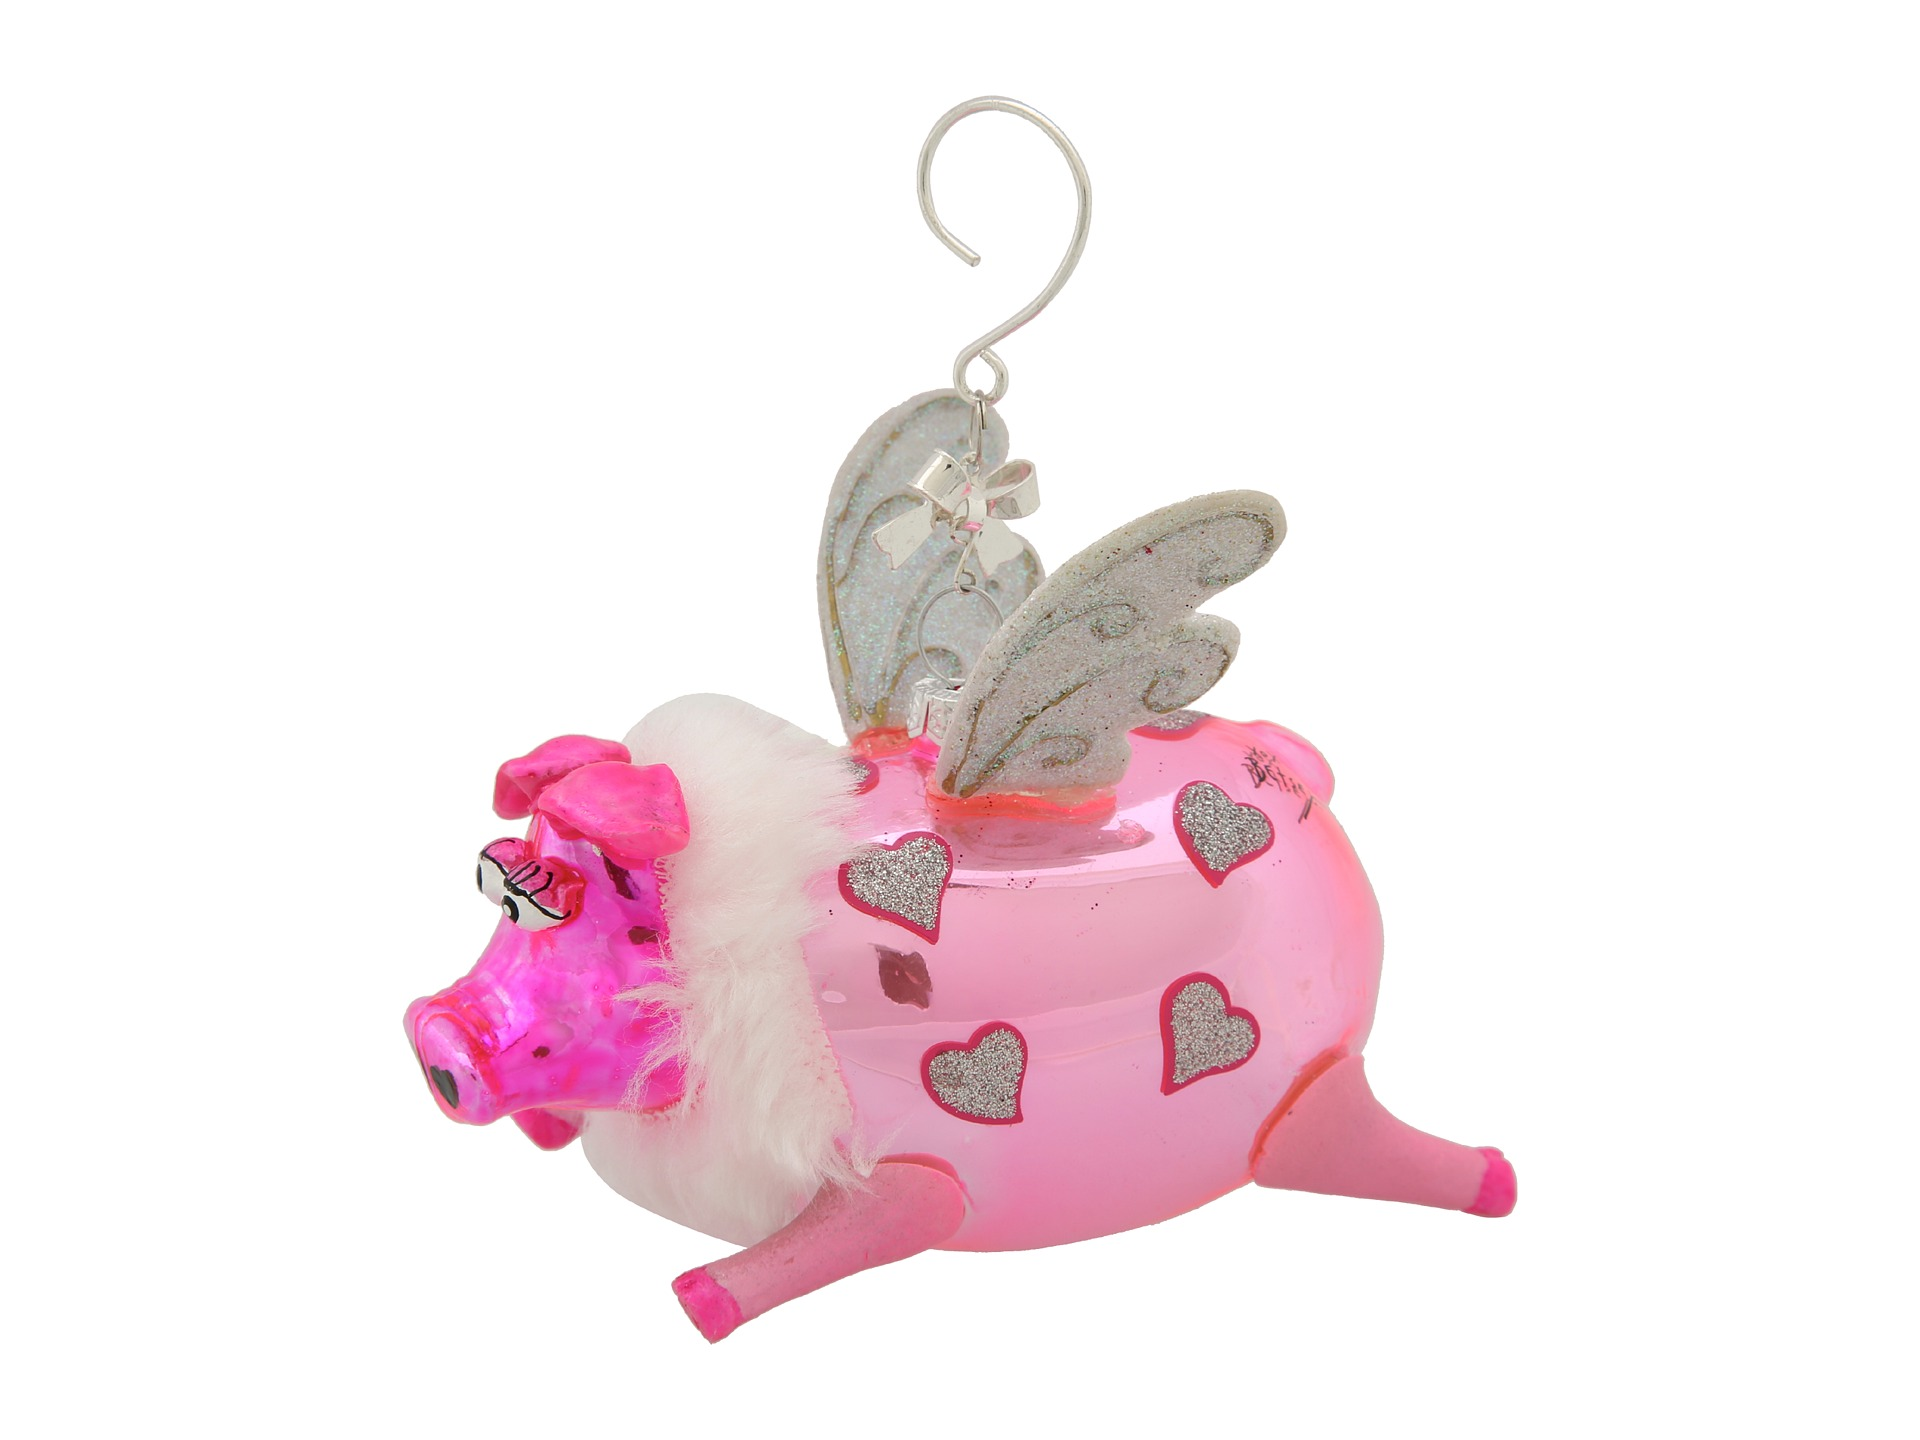 Betsey Johnson Hot Pink Flying Pig Ornament